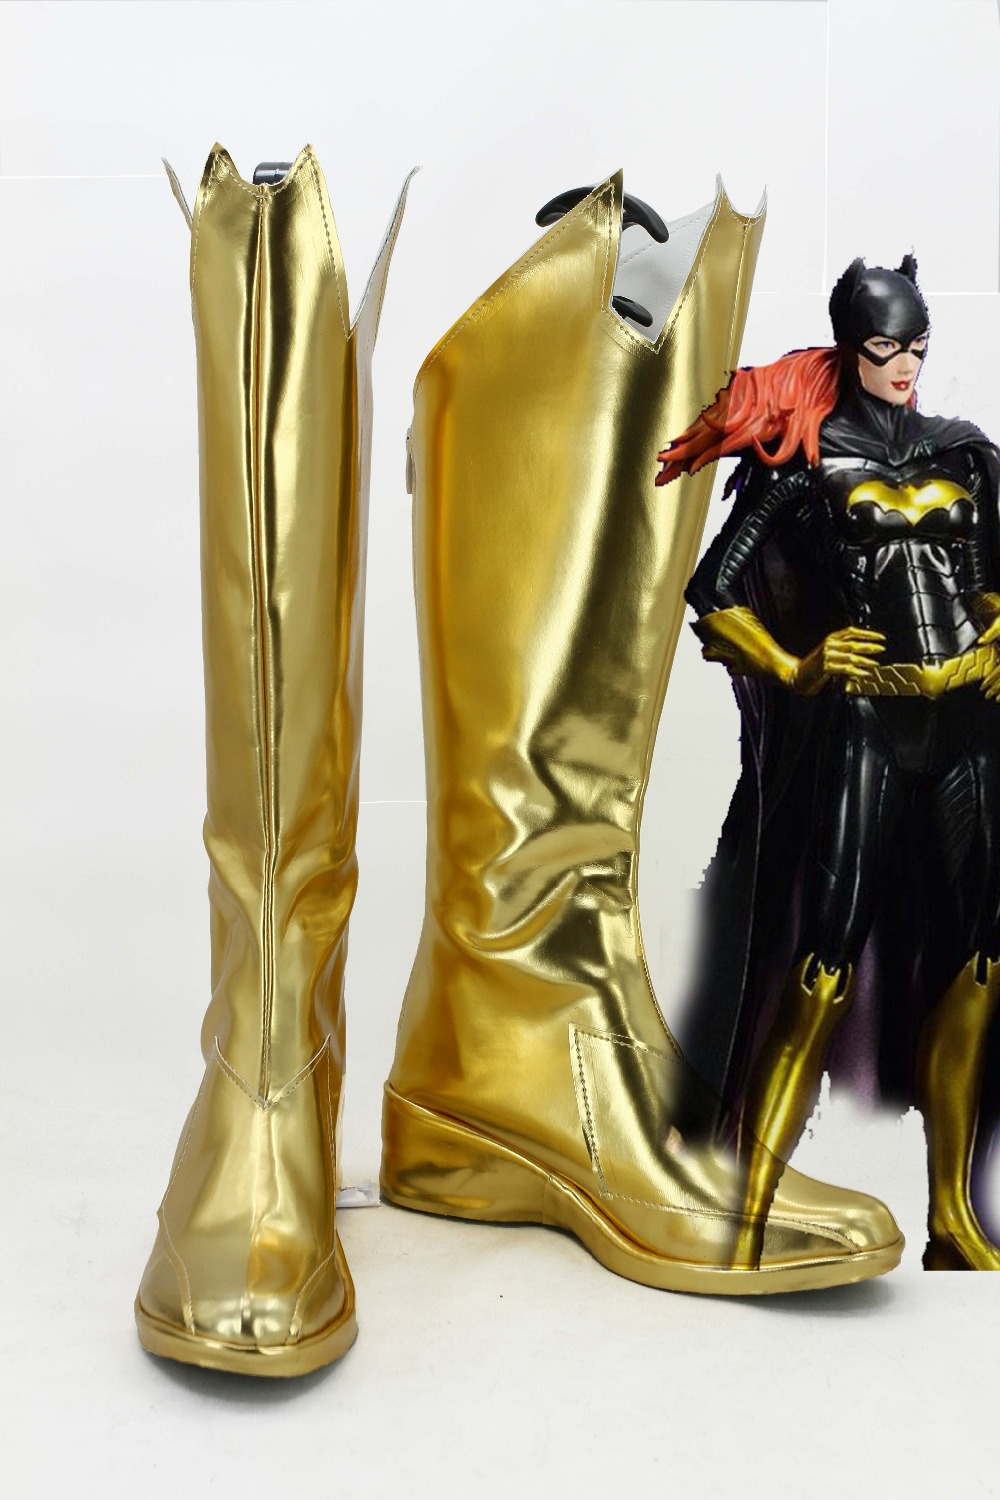 0 female costumes customize cos Batman Batgirl COSPLAY customized cos Batman Batgirl shoes boots costumes